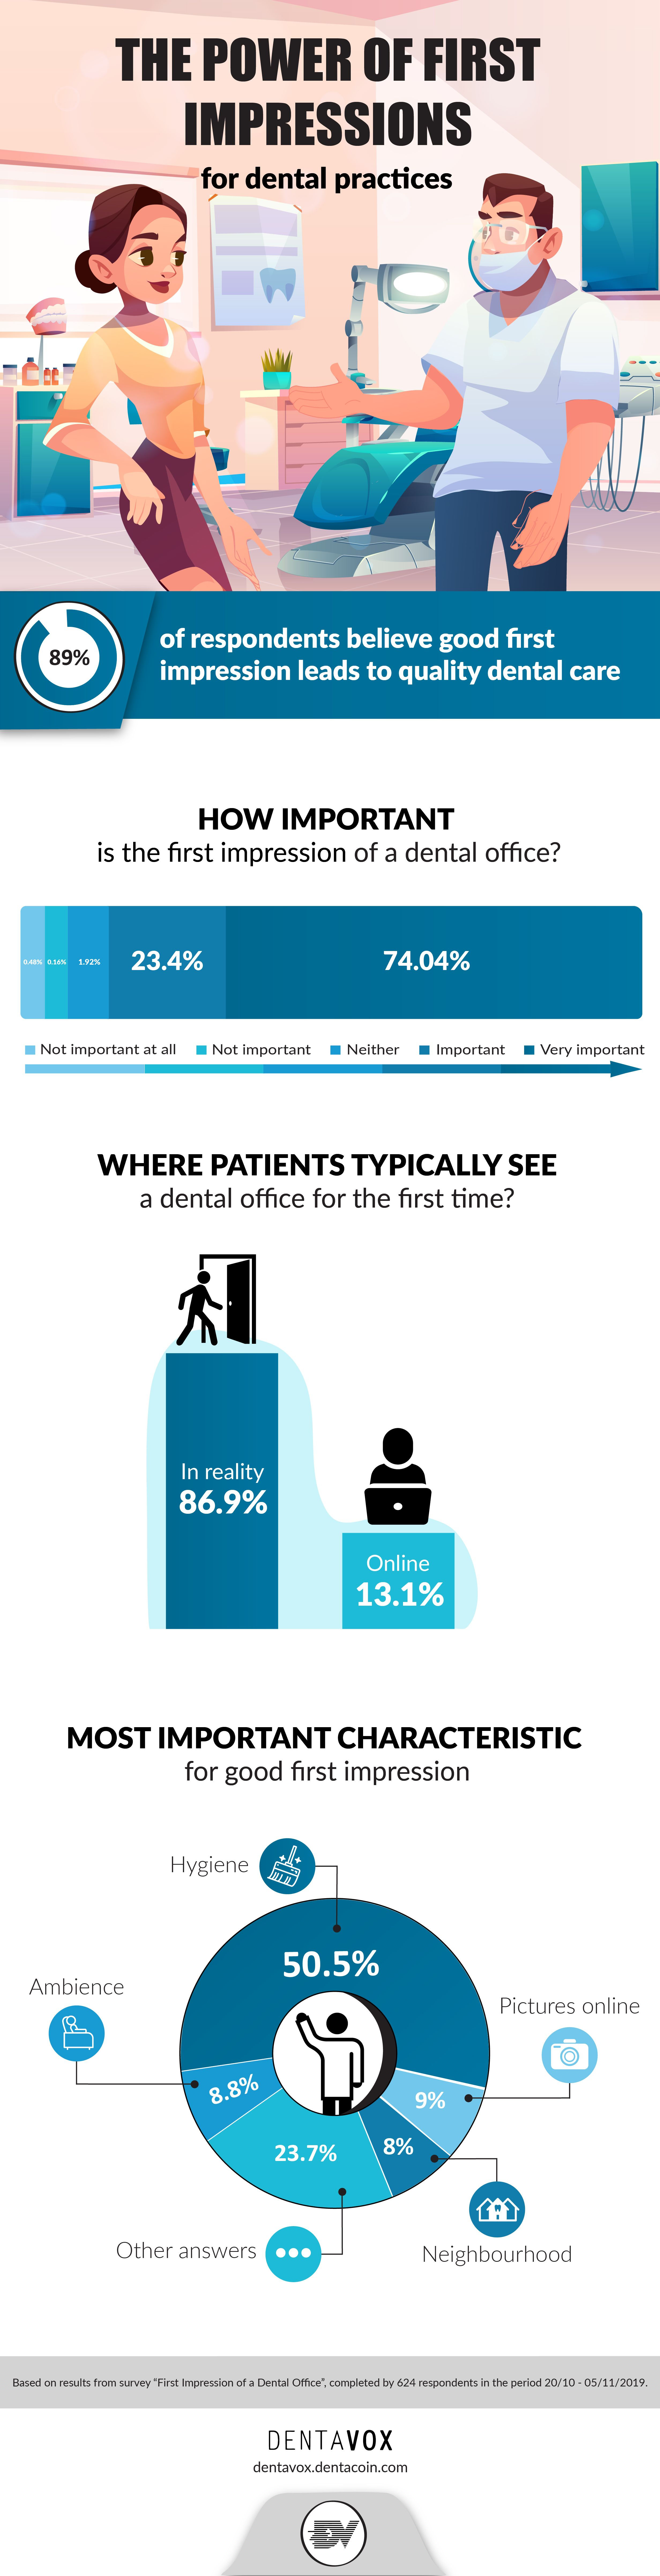 Why first impressions matter to dental practices!